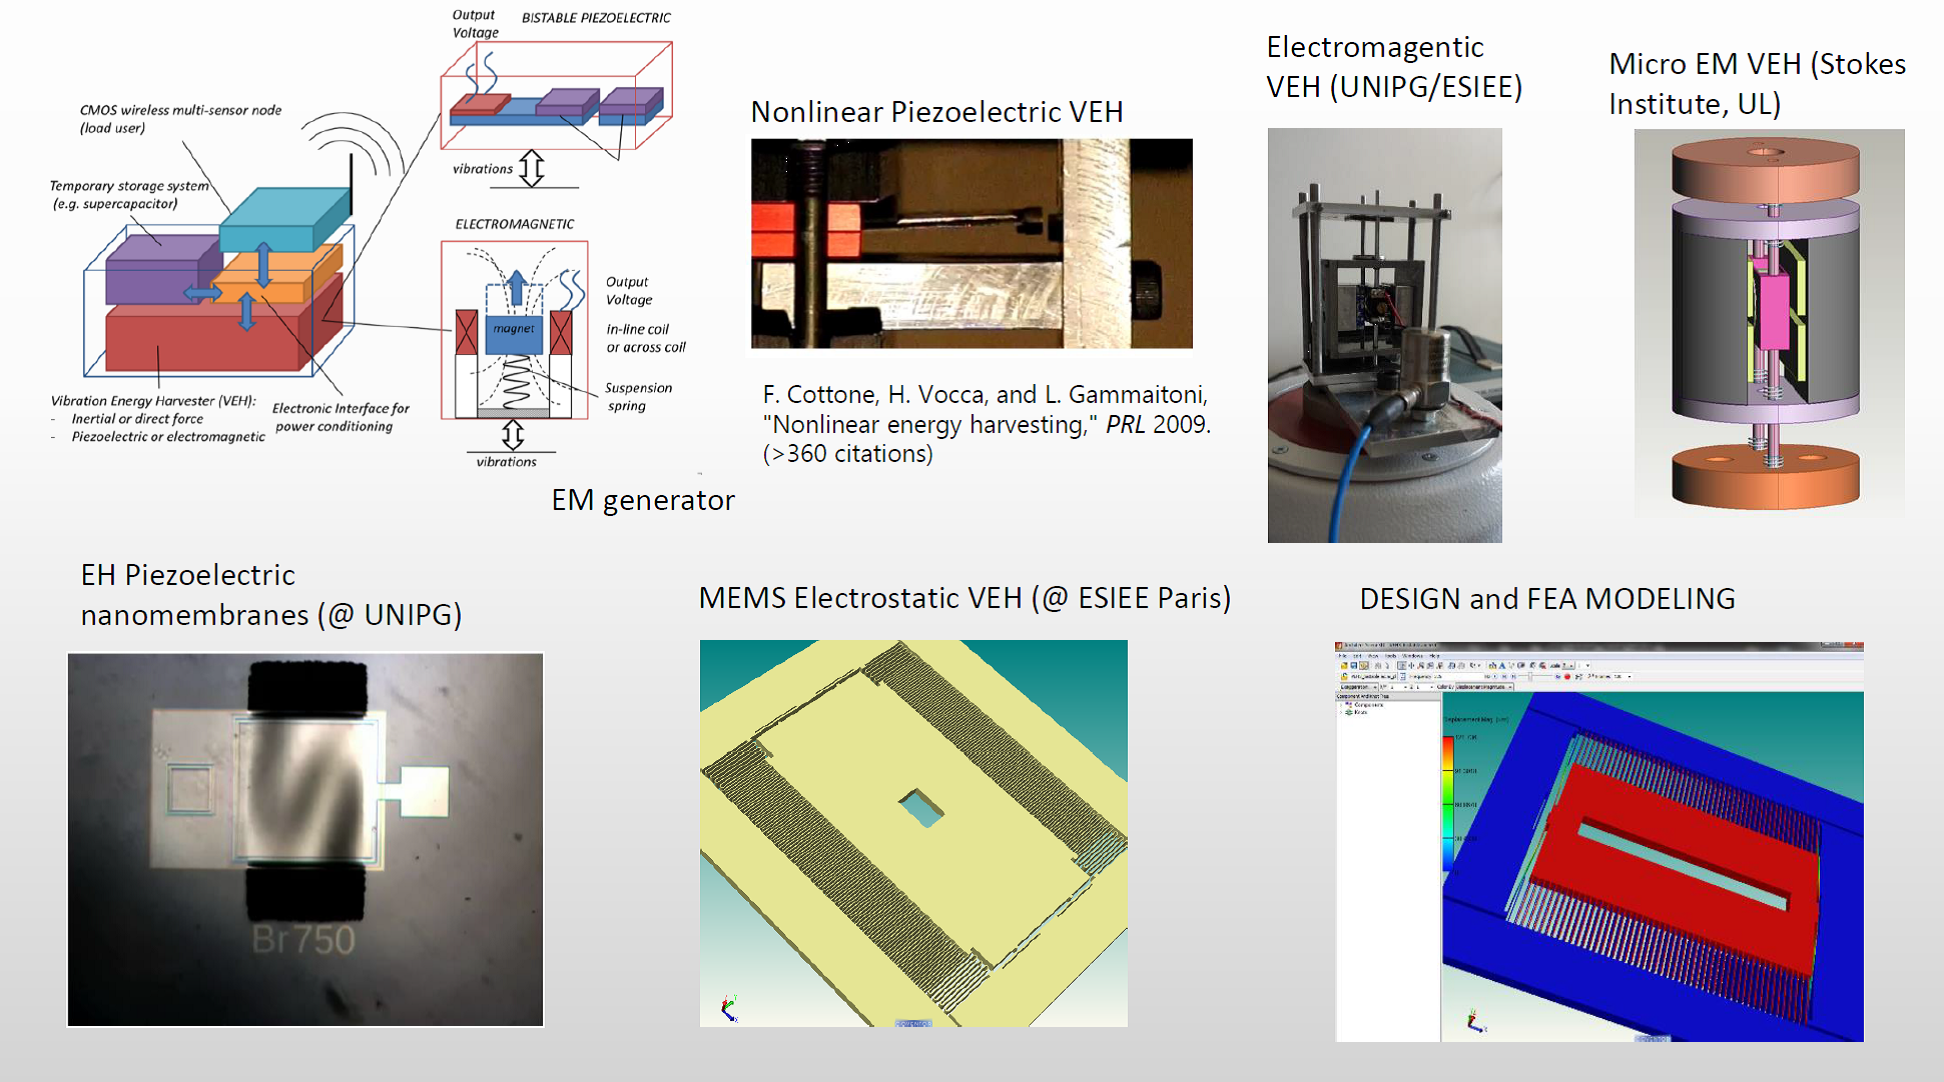 Research and Development Work on Energy Harvesting Technology